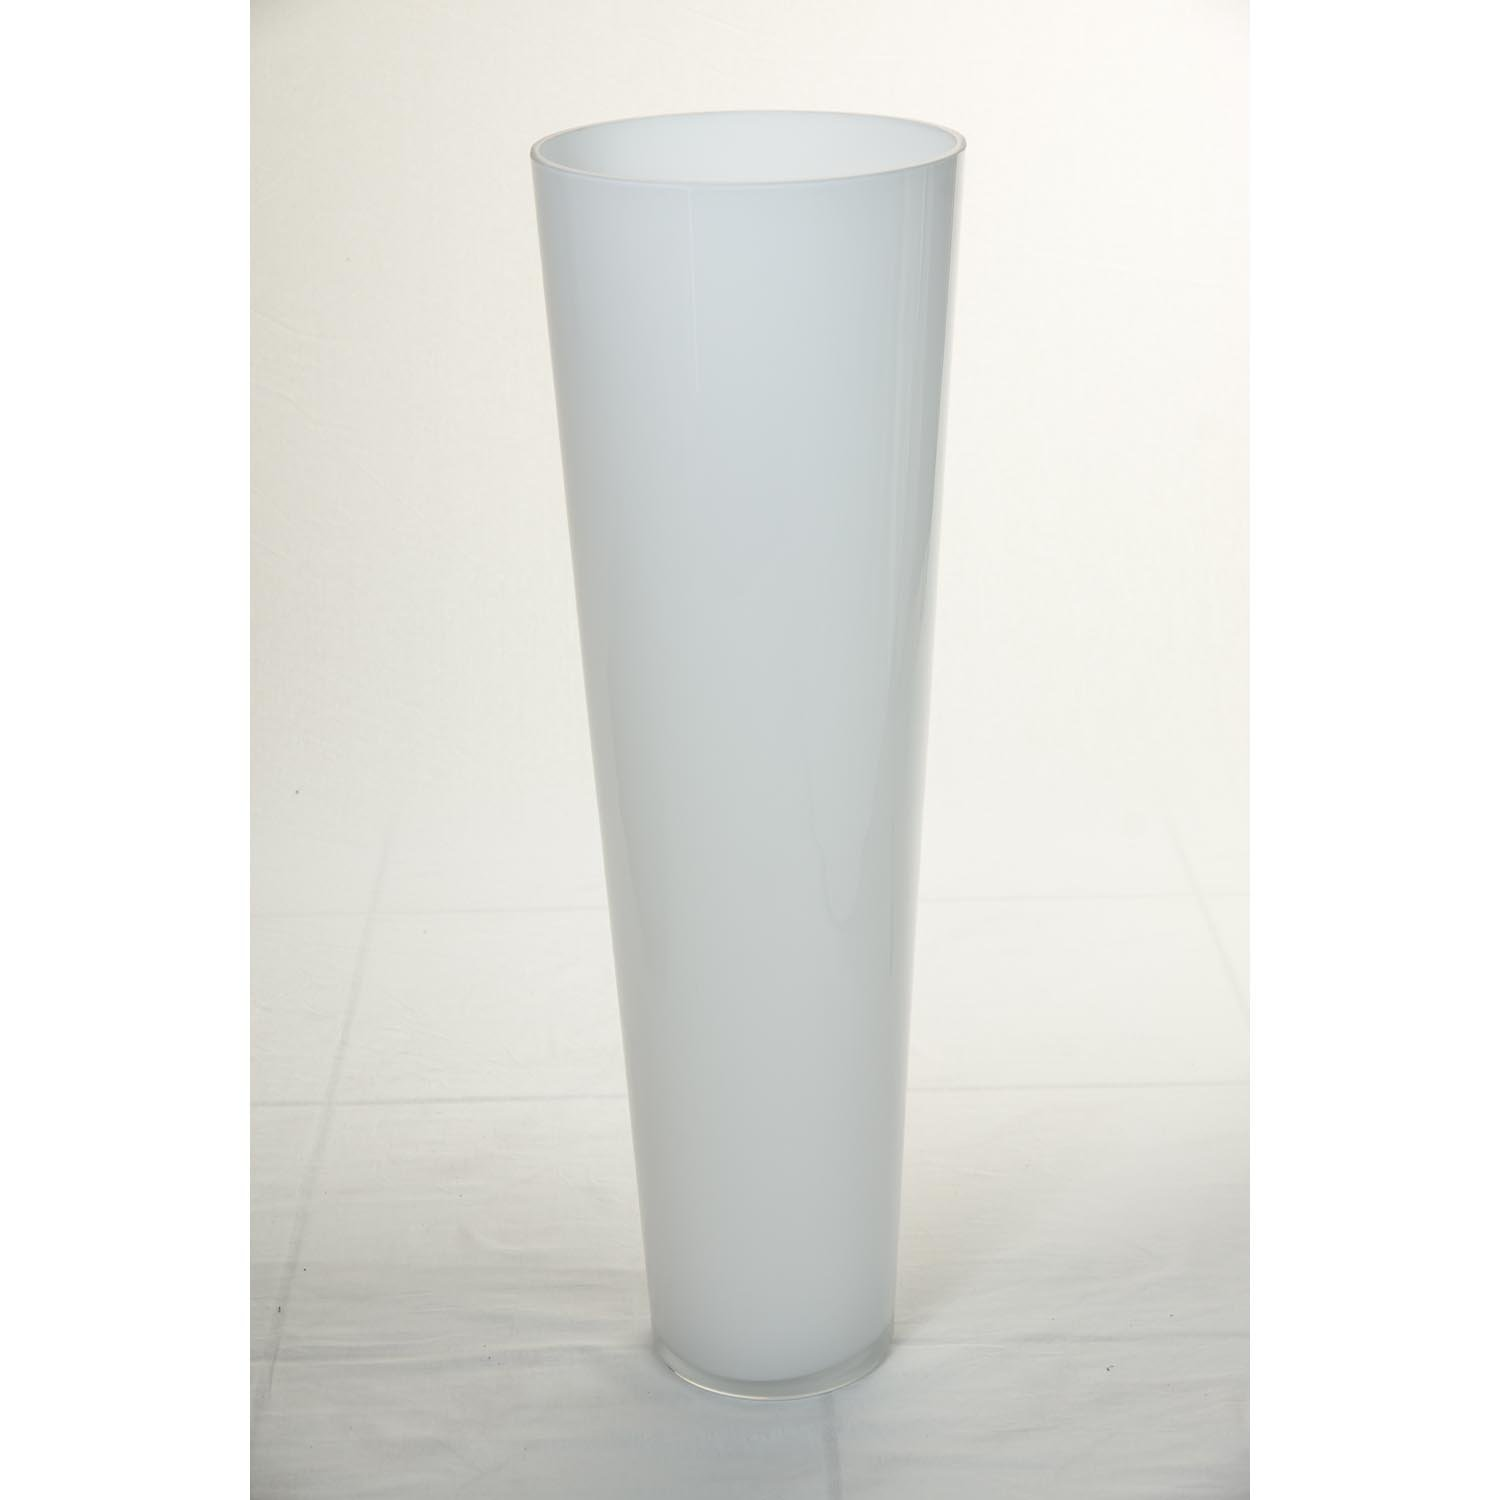 Large conical floor vase anna of glass black 24 70 cm 9 inna glas anna floor vase glass conical large 70 cm diameter 22 cm white reviewsmspy